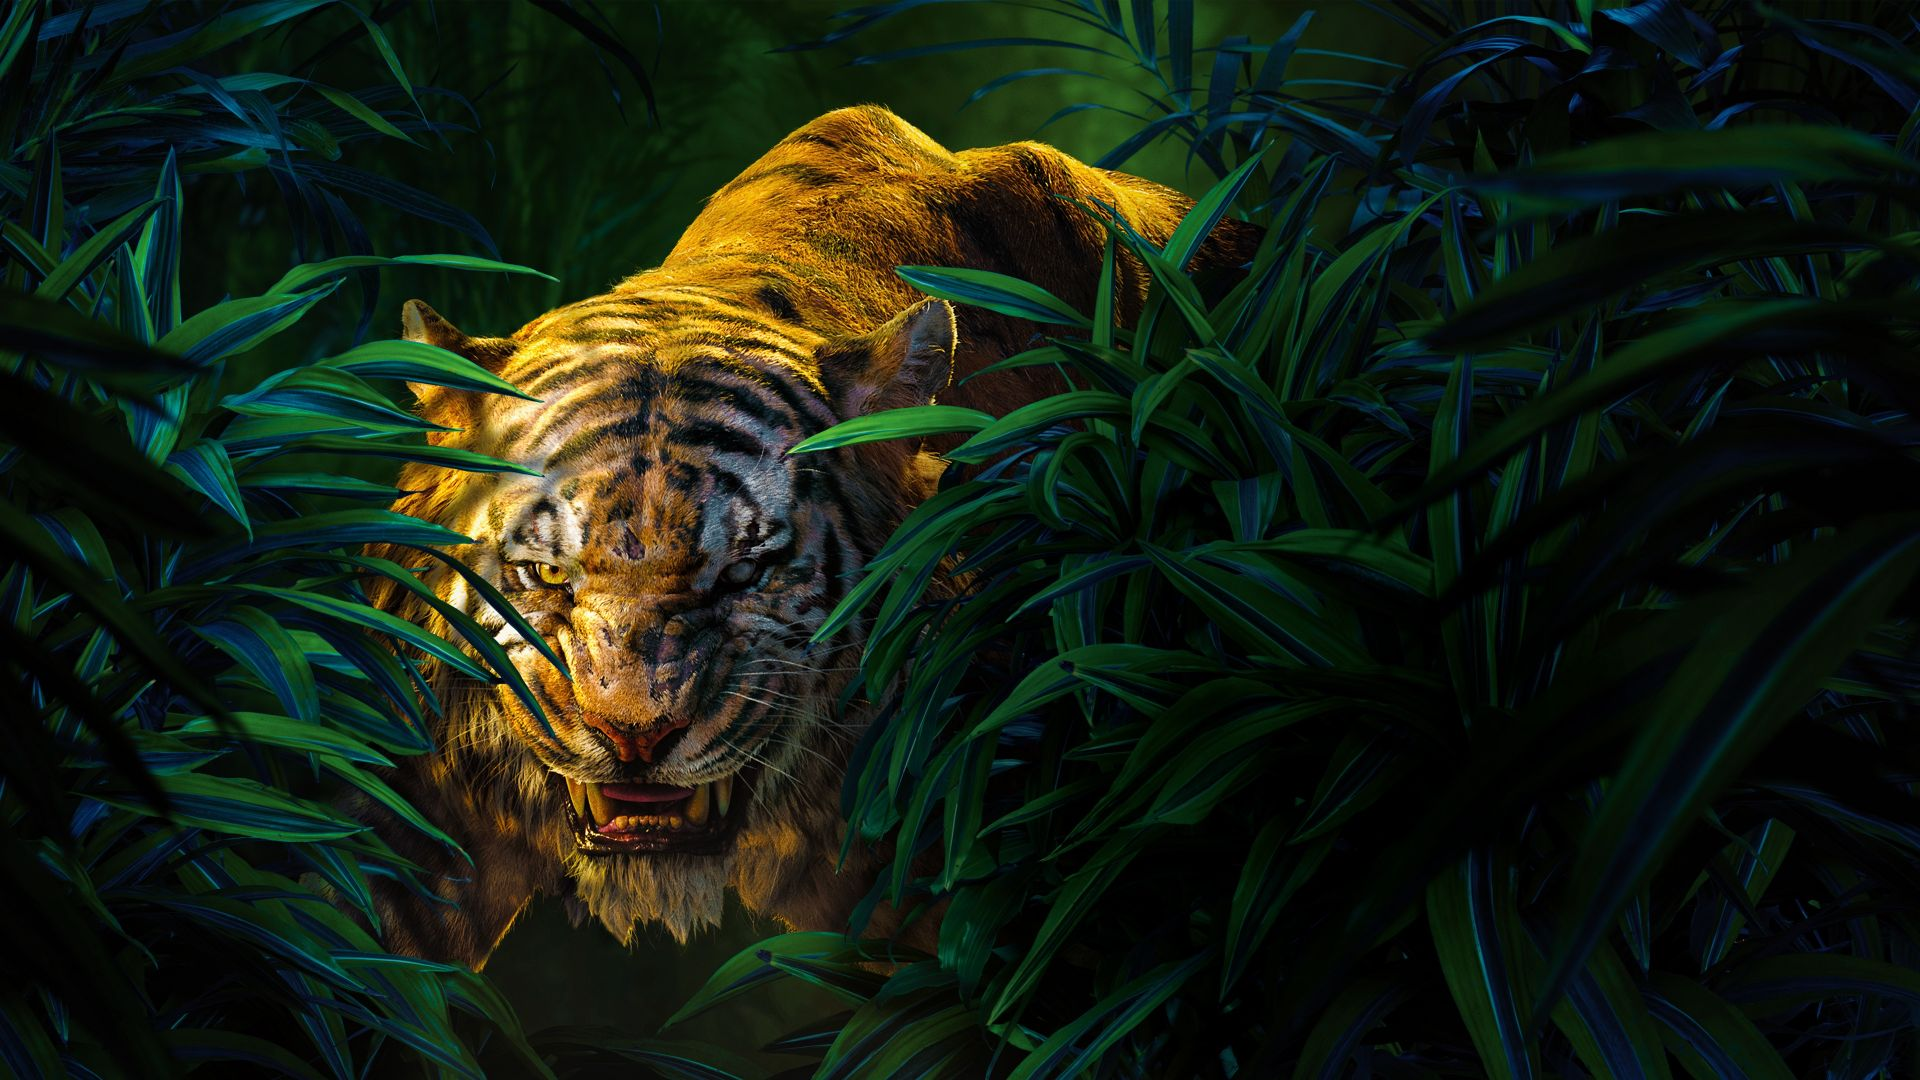 Shere Khan The Jungle Book Movie Hd Movies 4k Wallpapers Images Backgrounds Photos And Pictures